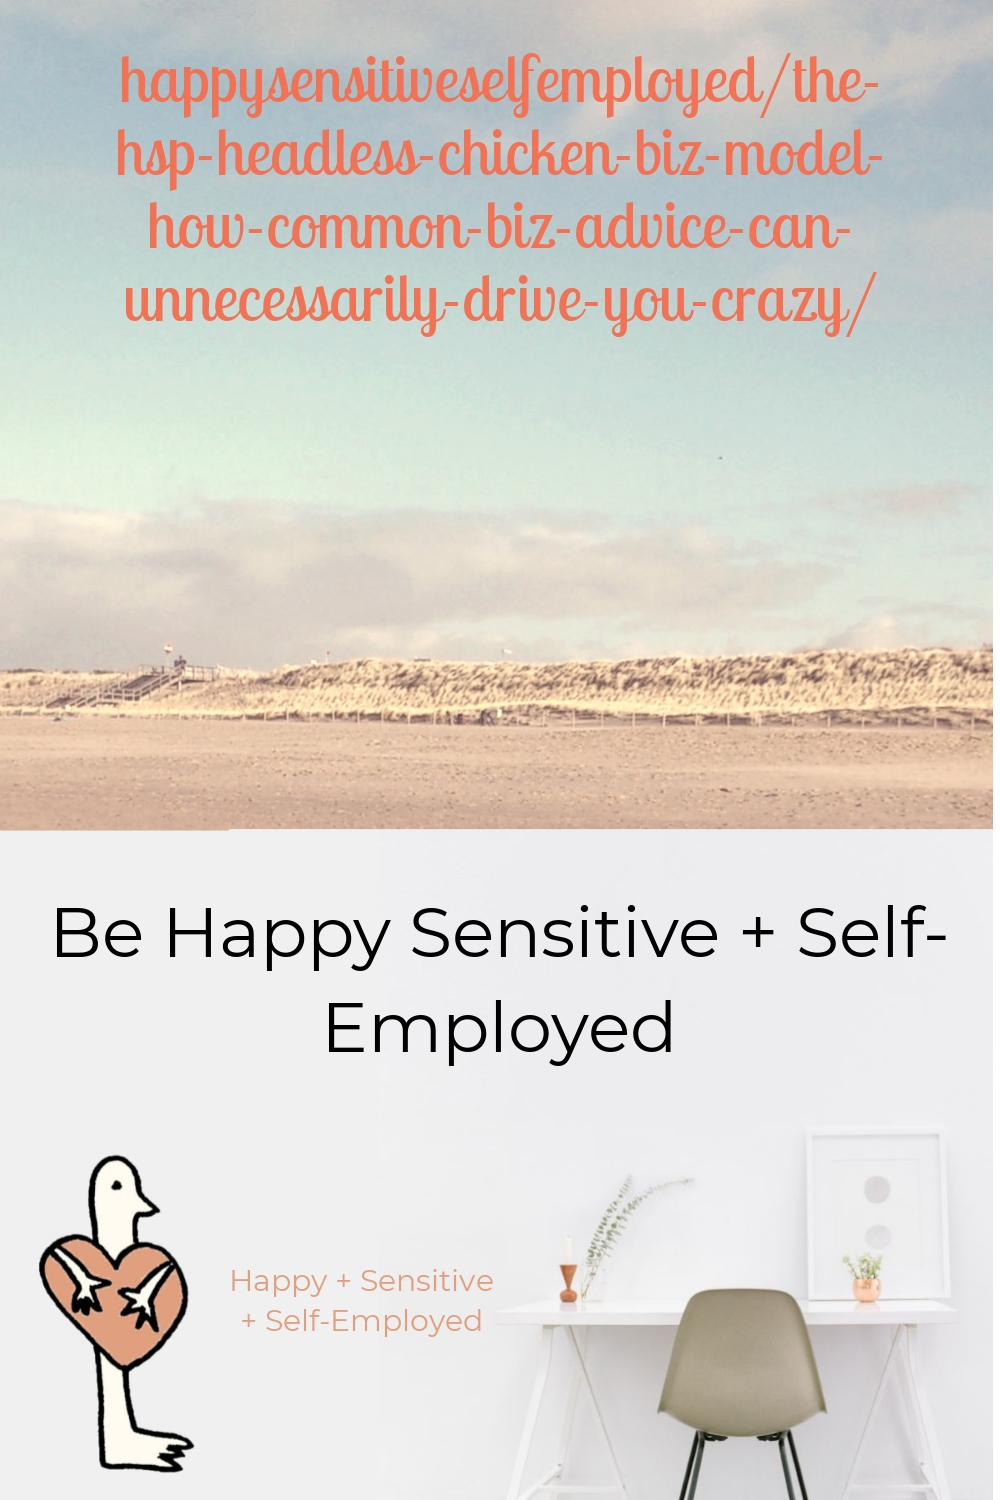 happysensitiveselfemployed/the-hsp-headless-chicken-biz-model-how-common-biz-advice-can-unnecessarily-drive-you-crazy/